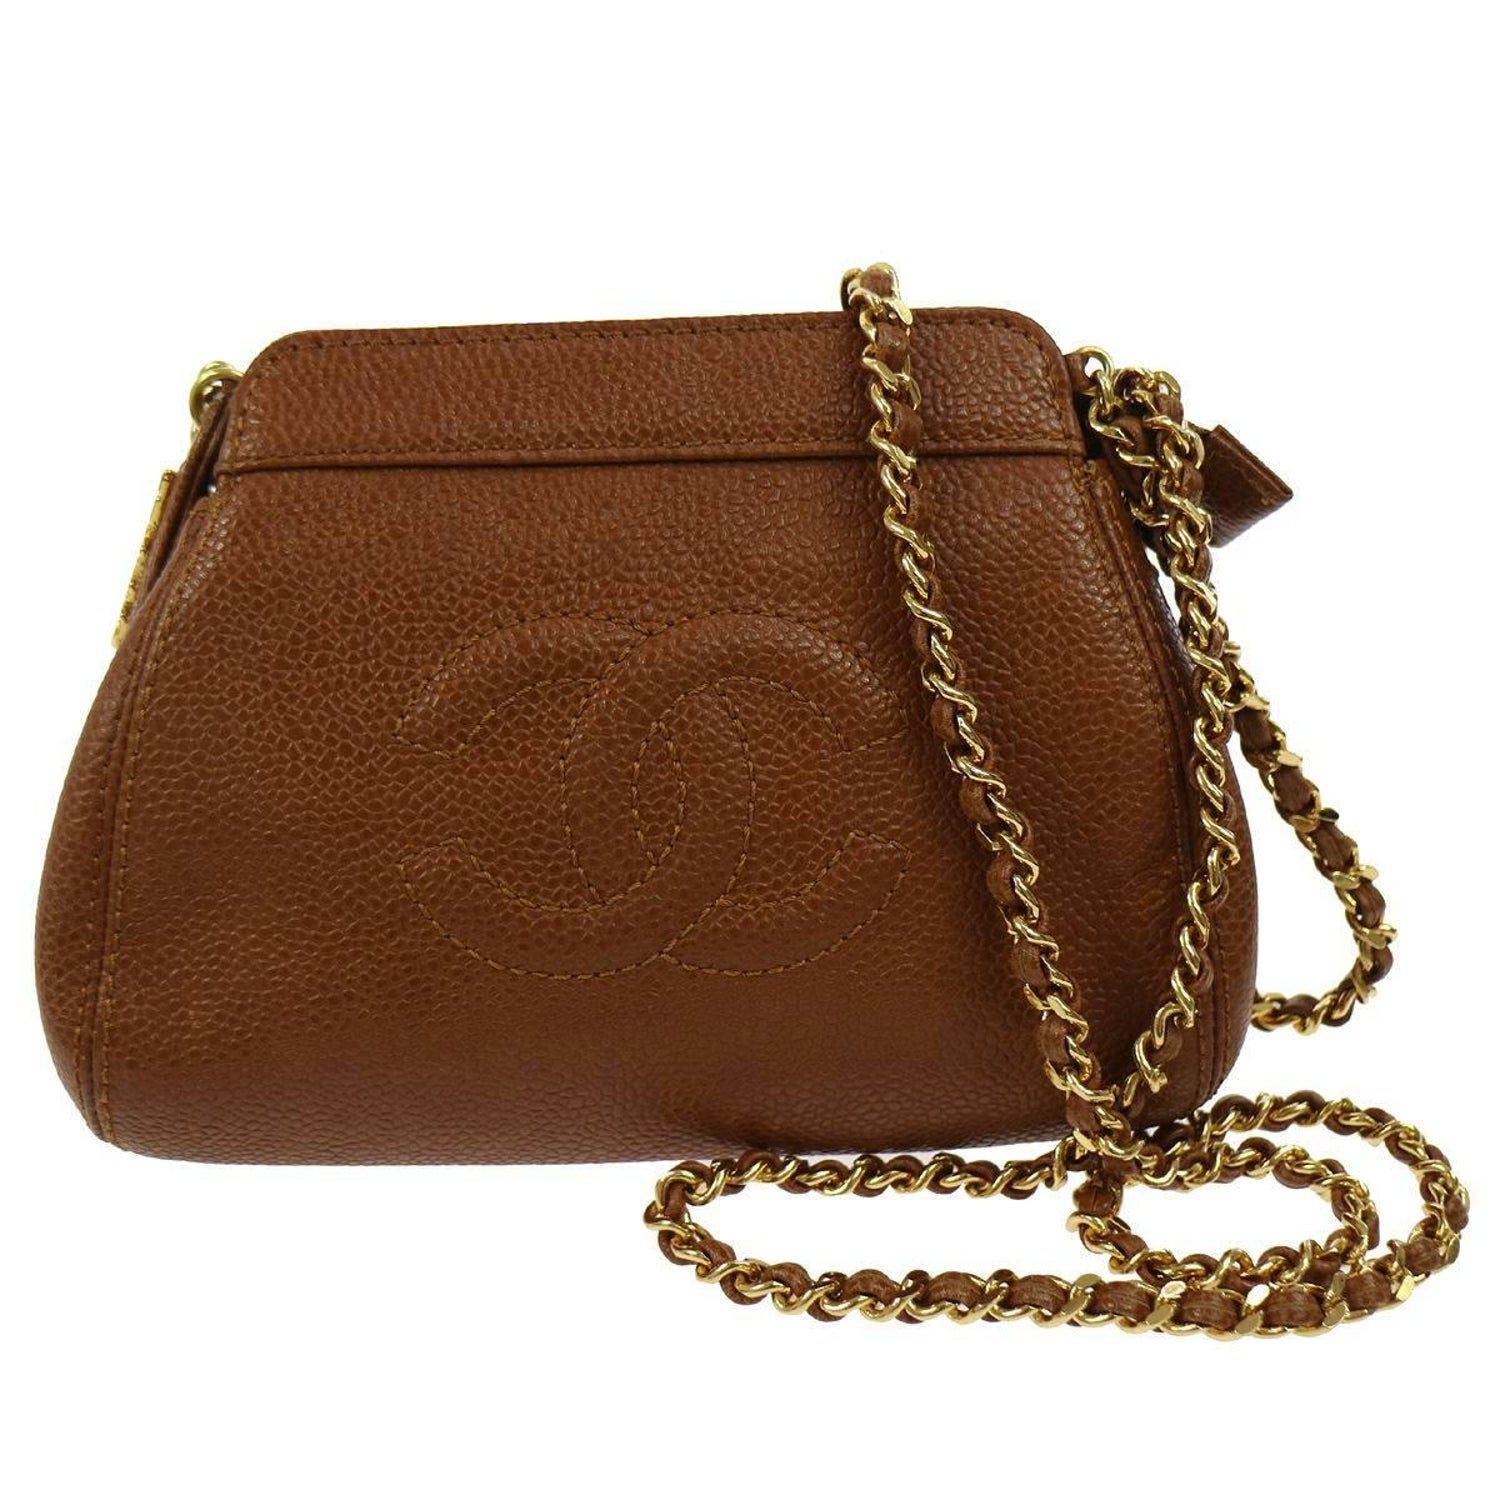 54e1125f0549 Chanel Caramel Caviar Leather Small Party Evening Shoulder Bag For Sale at  1stdibs